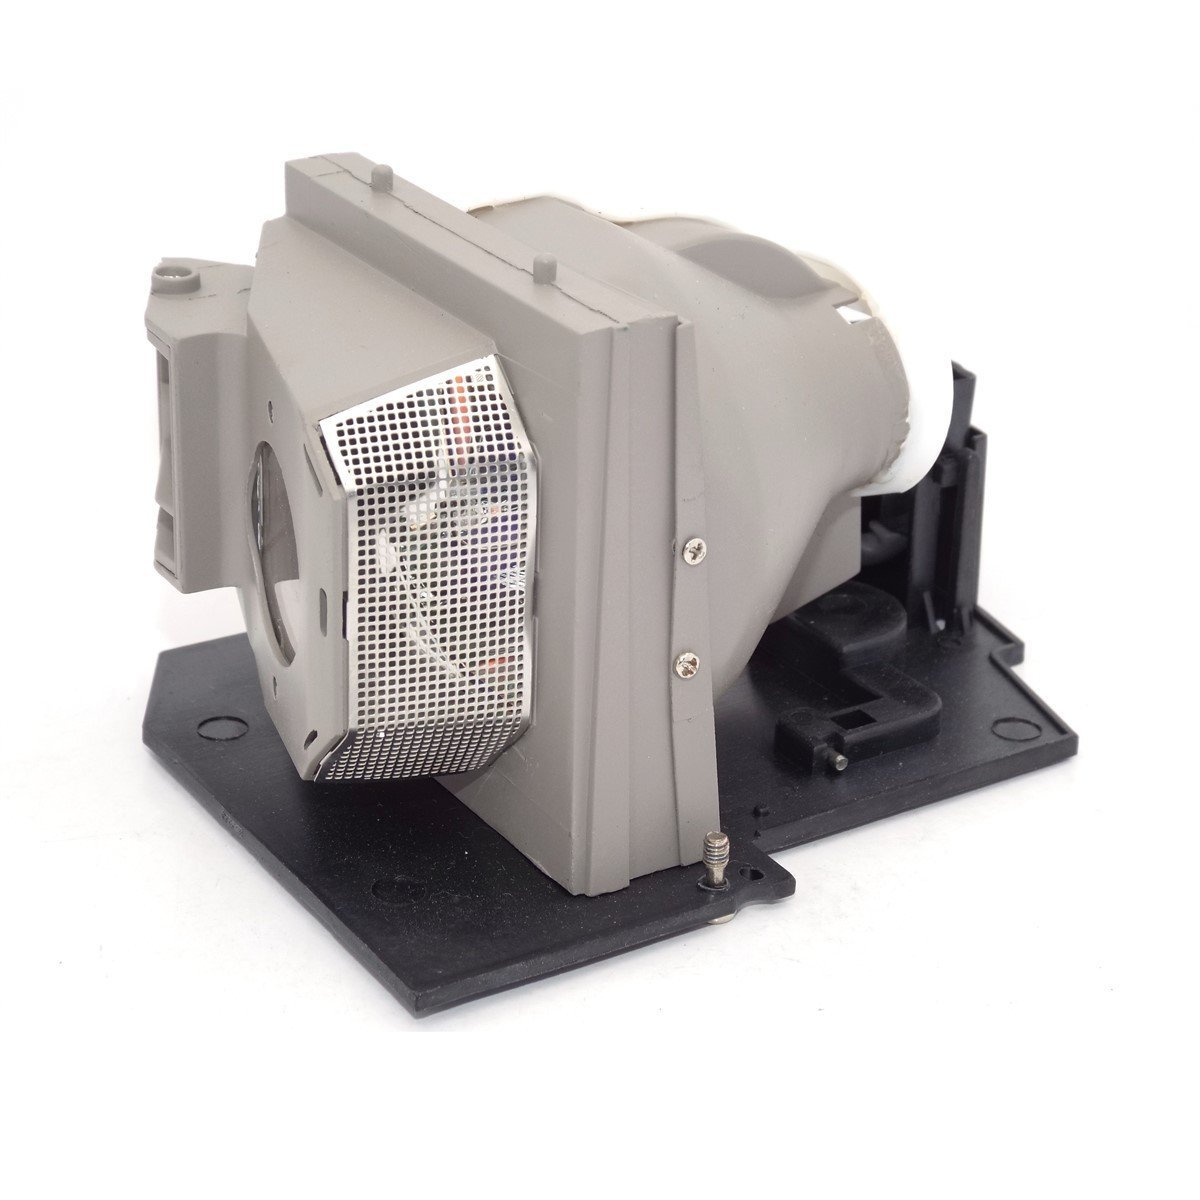 SP-LAMP-032 SPLAMP032 for Infocus IN81 IN82 IN83 M82 X10 Projector Lamp Bulb With housing elitech 12000